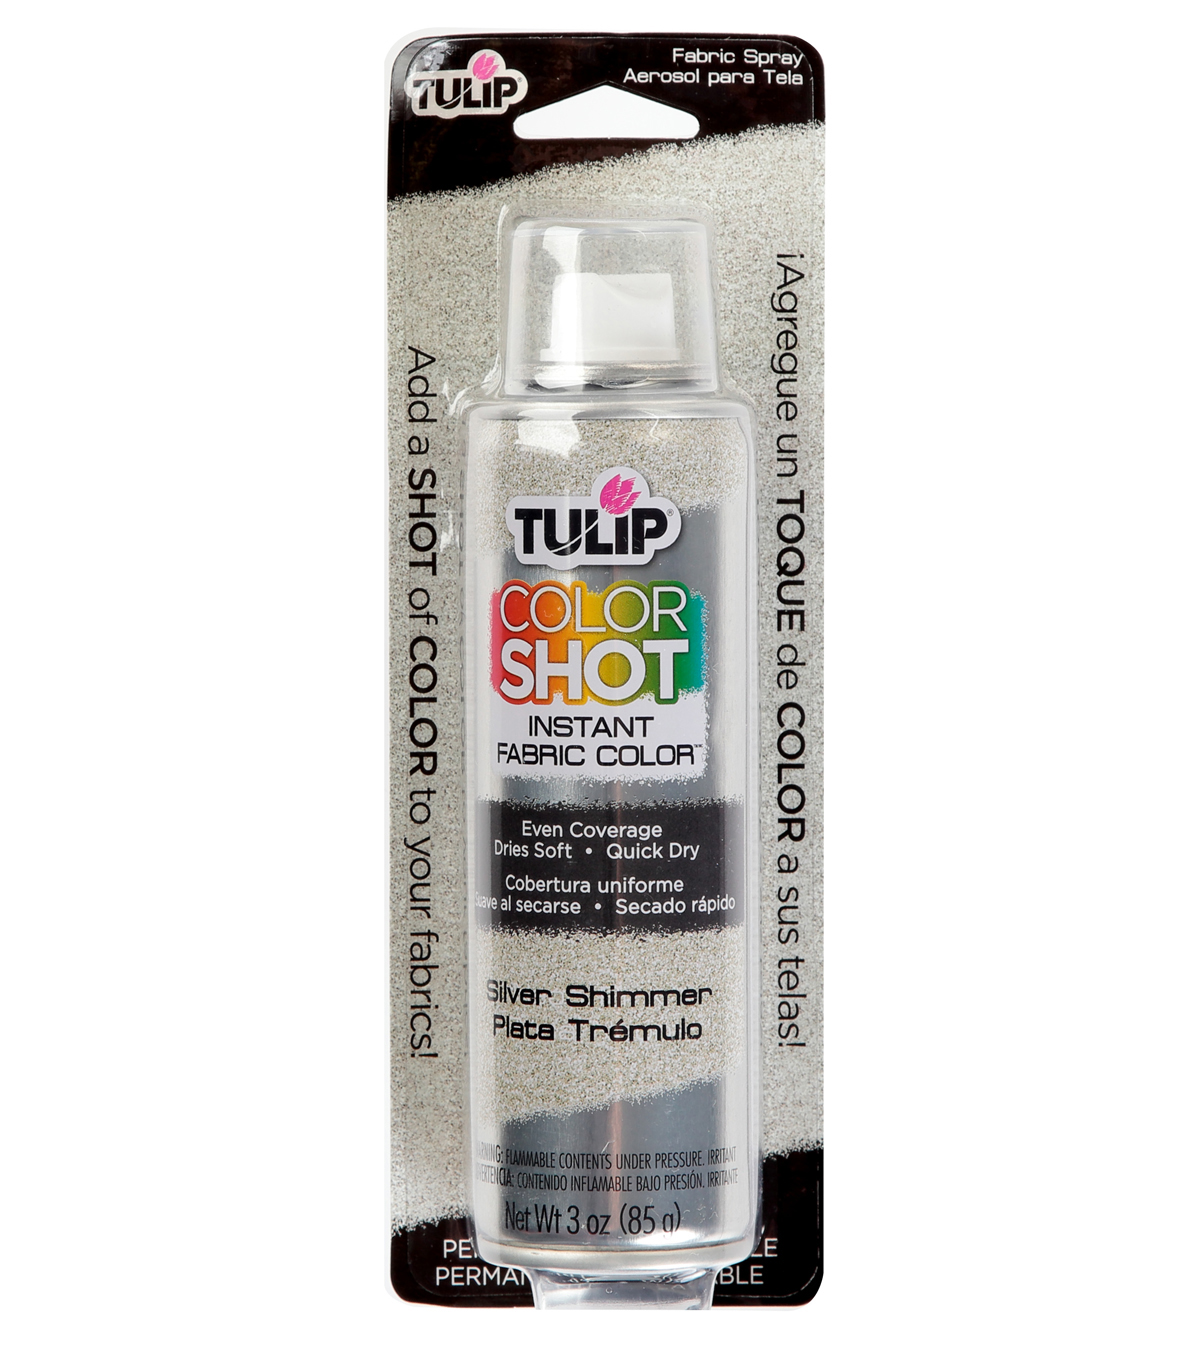 Tulip ColorShot Instant Fabric Color Spray 3oz, Silver Metallic